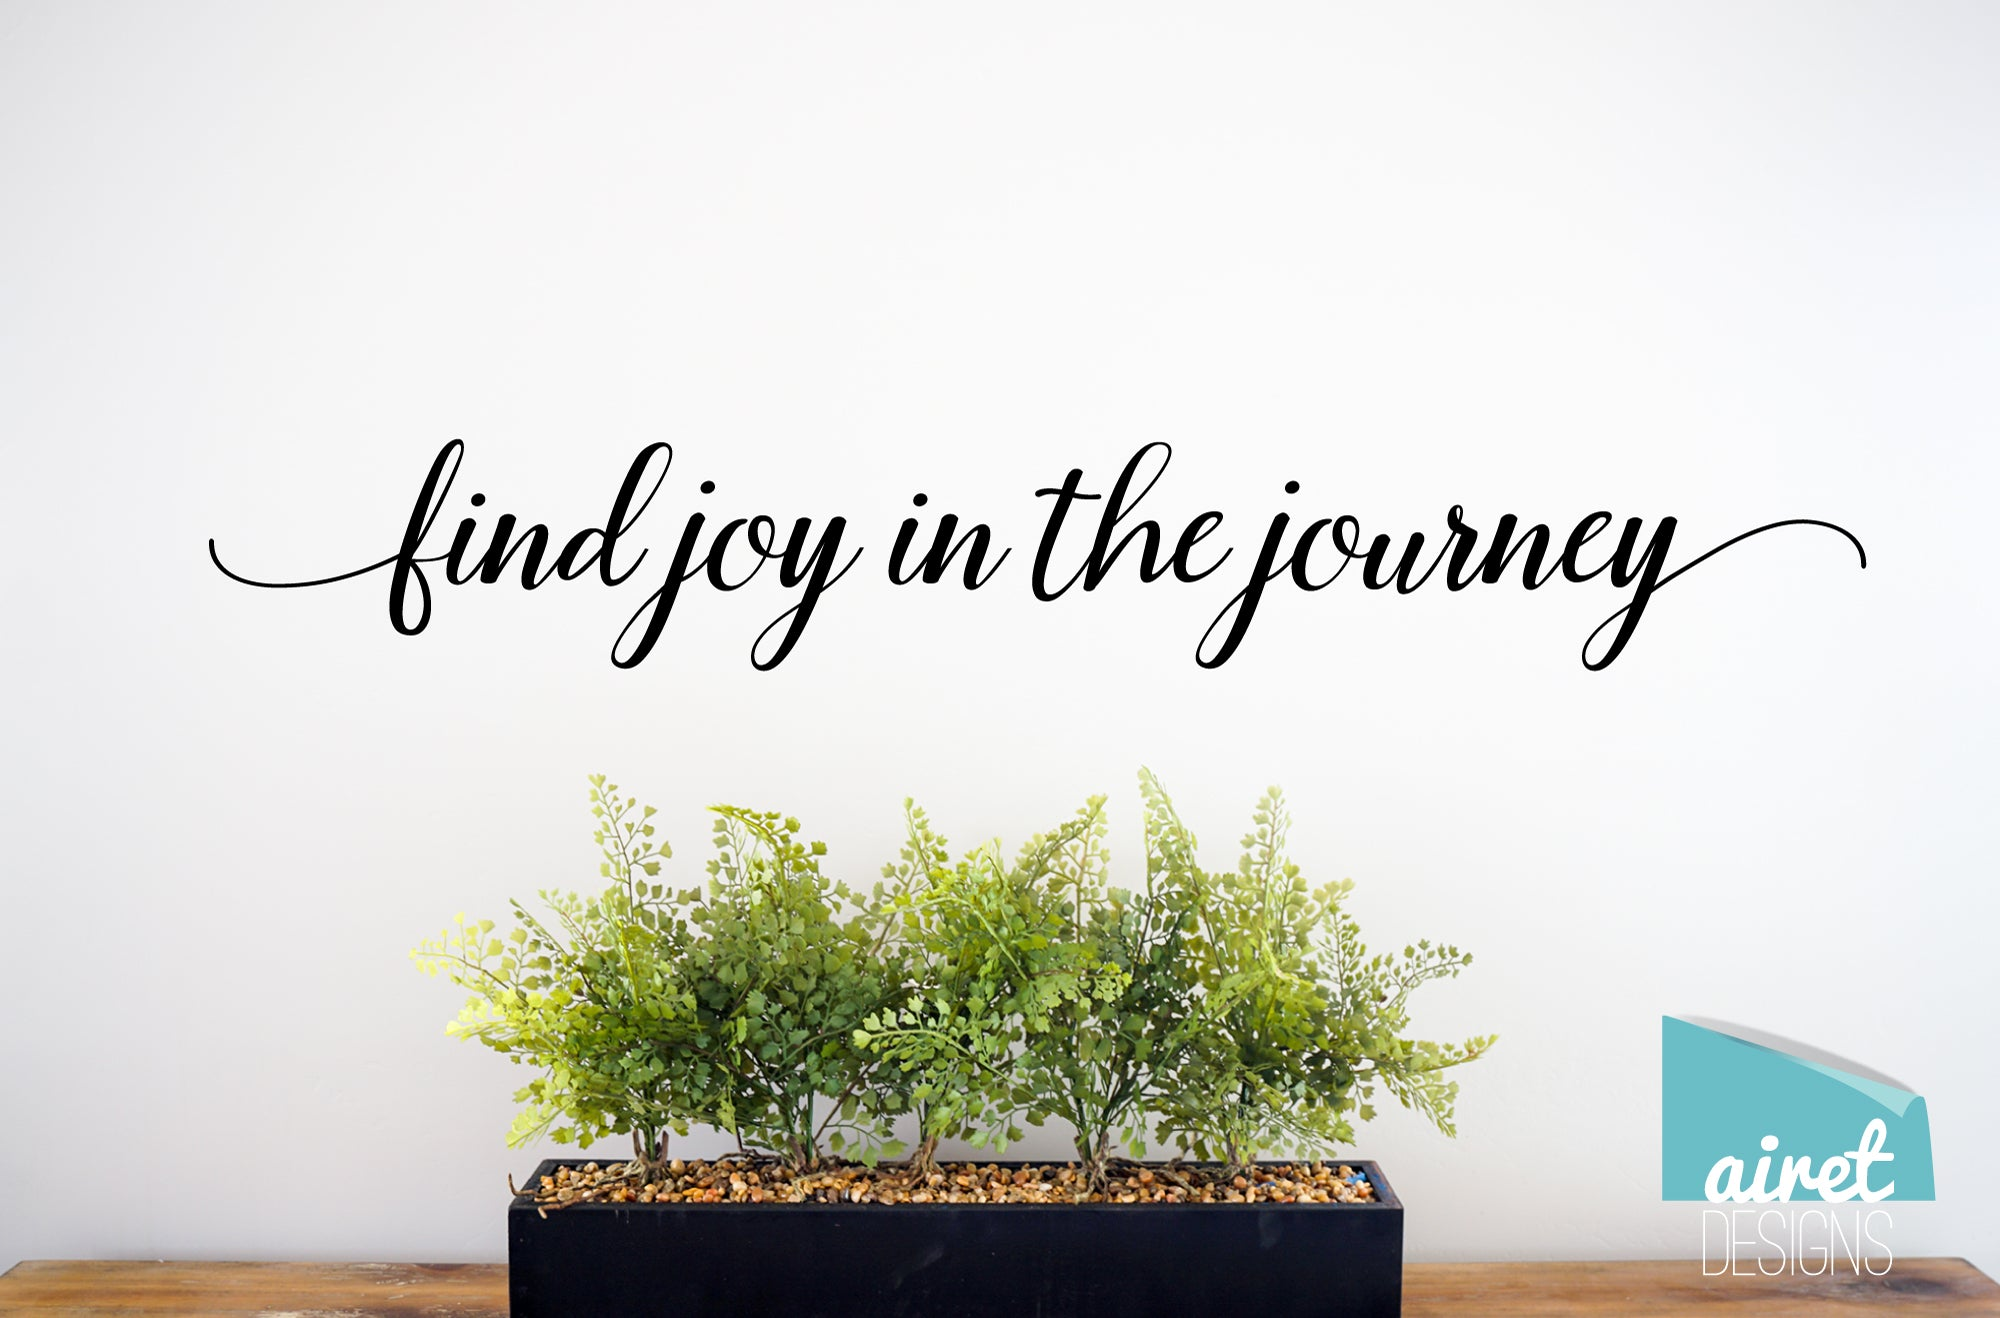 Find Joy In the Journey - Vinyl Decal Inspirational Wall Decor Sticker Sign v2